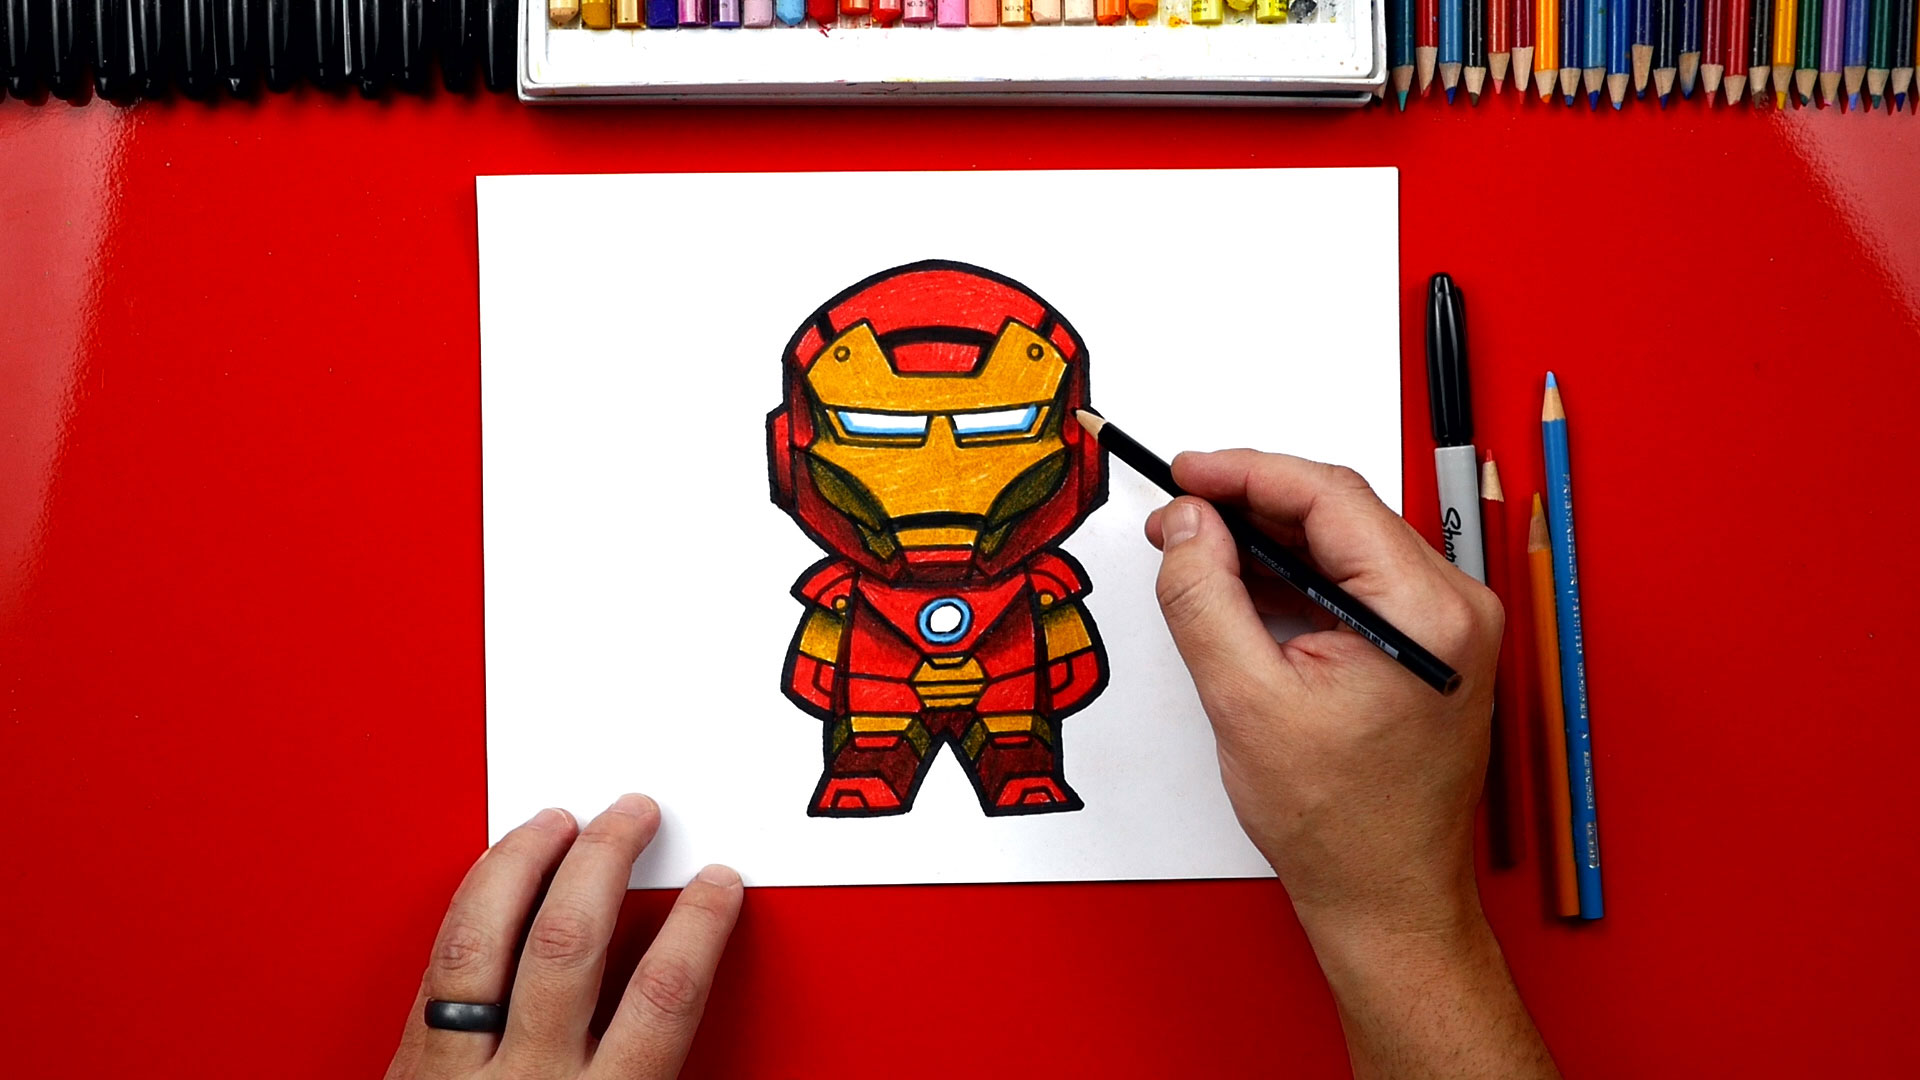 Vector illustration family drawing stock illustrations. How To Draw Iron Man - Art For Kids Hub